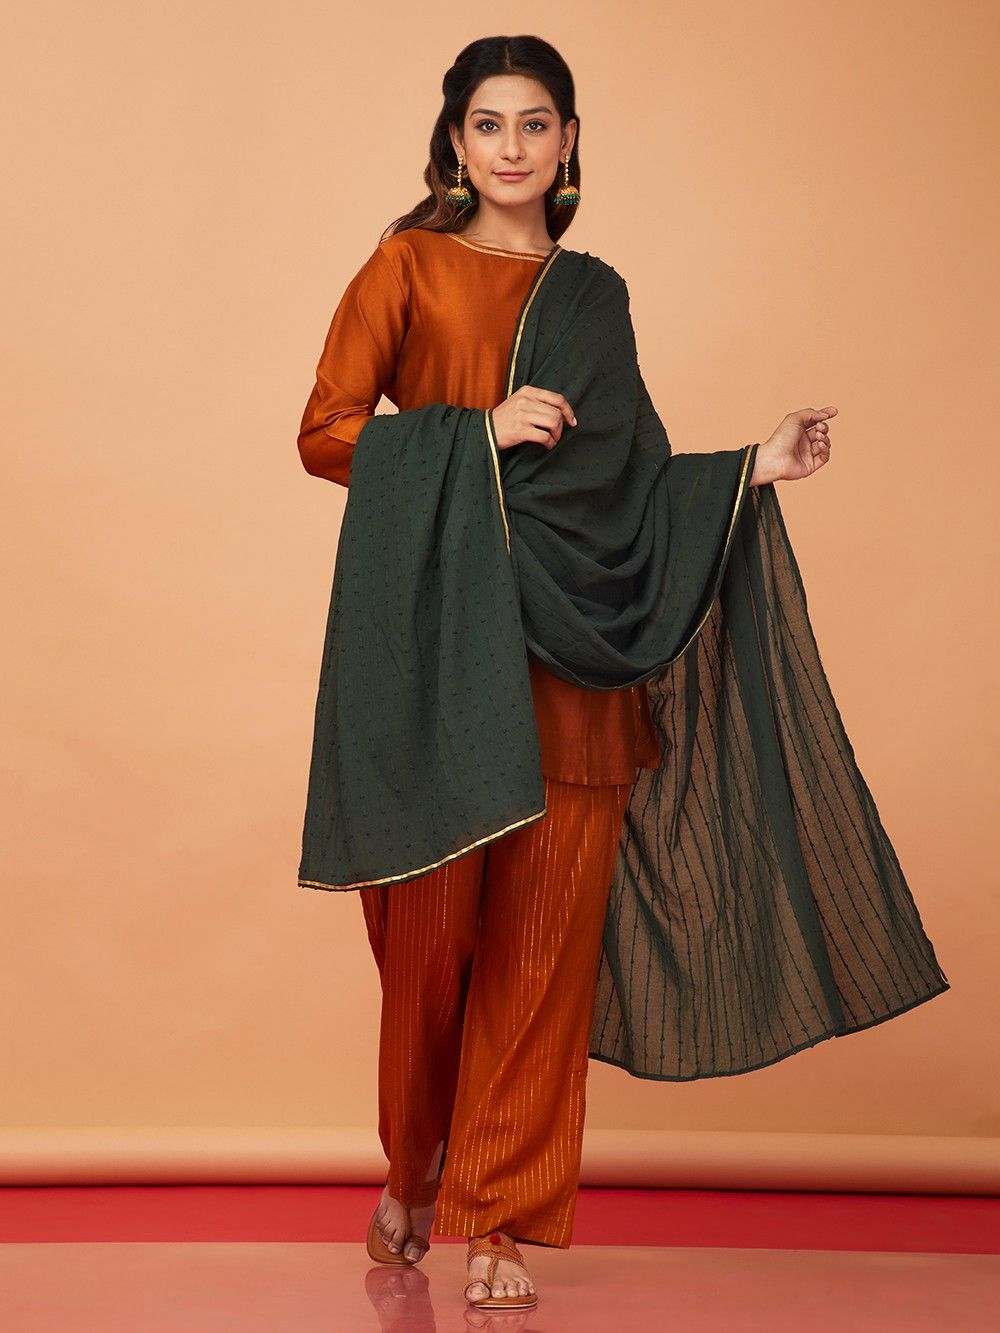 519c3a40f3 Buy Orange Green Chanderi Cotton Suit - Set of 3 online at Theloom